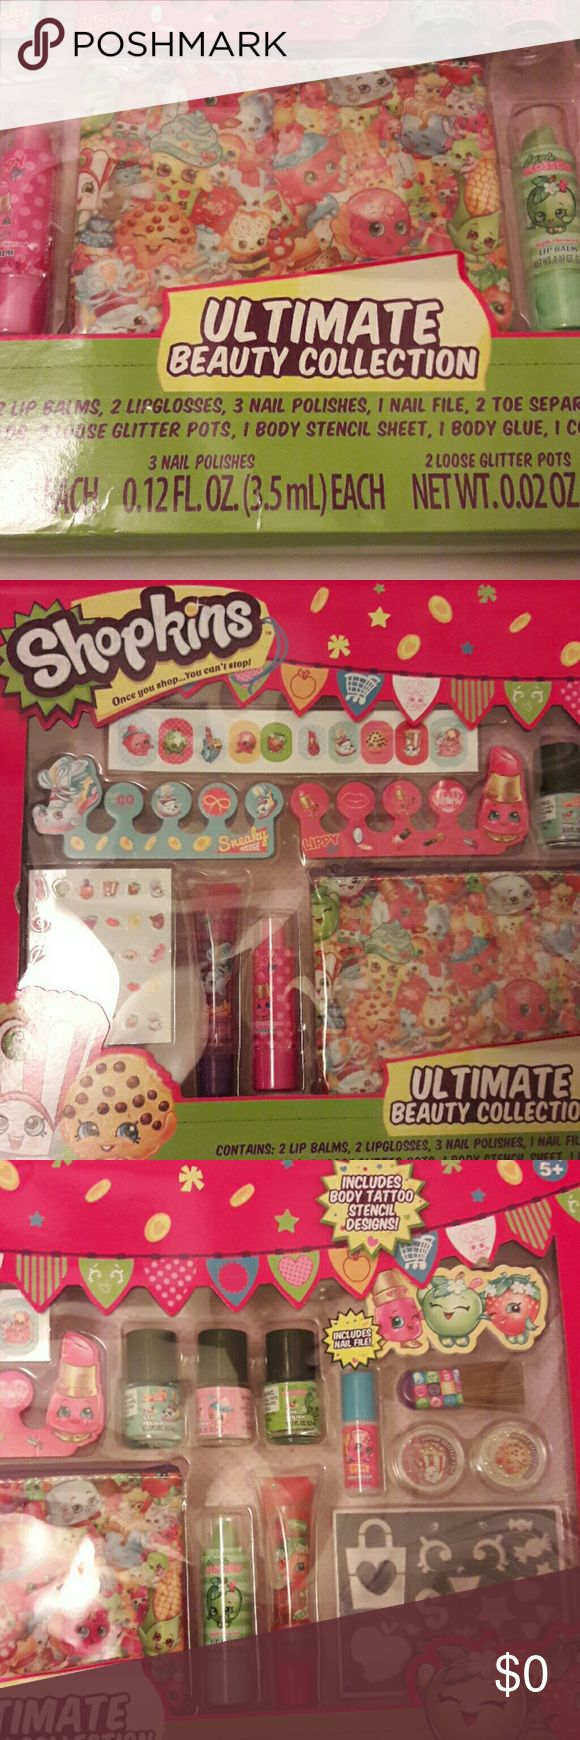 Shopkins Set **** Not for sale **** Shopkins ultimate Beauty collection Shopkins Other